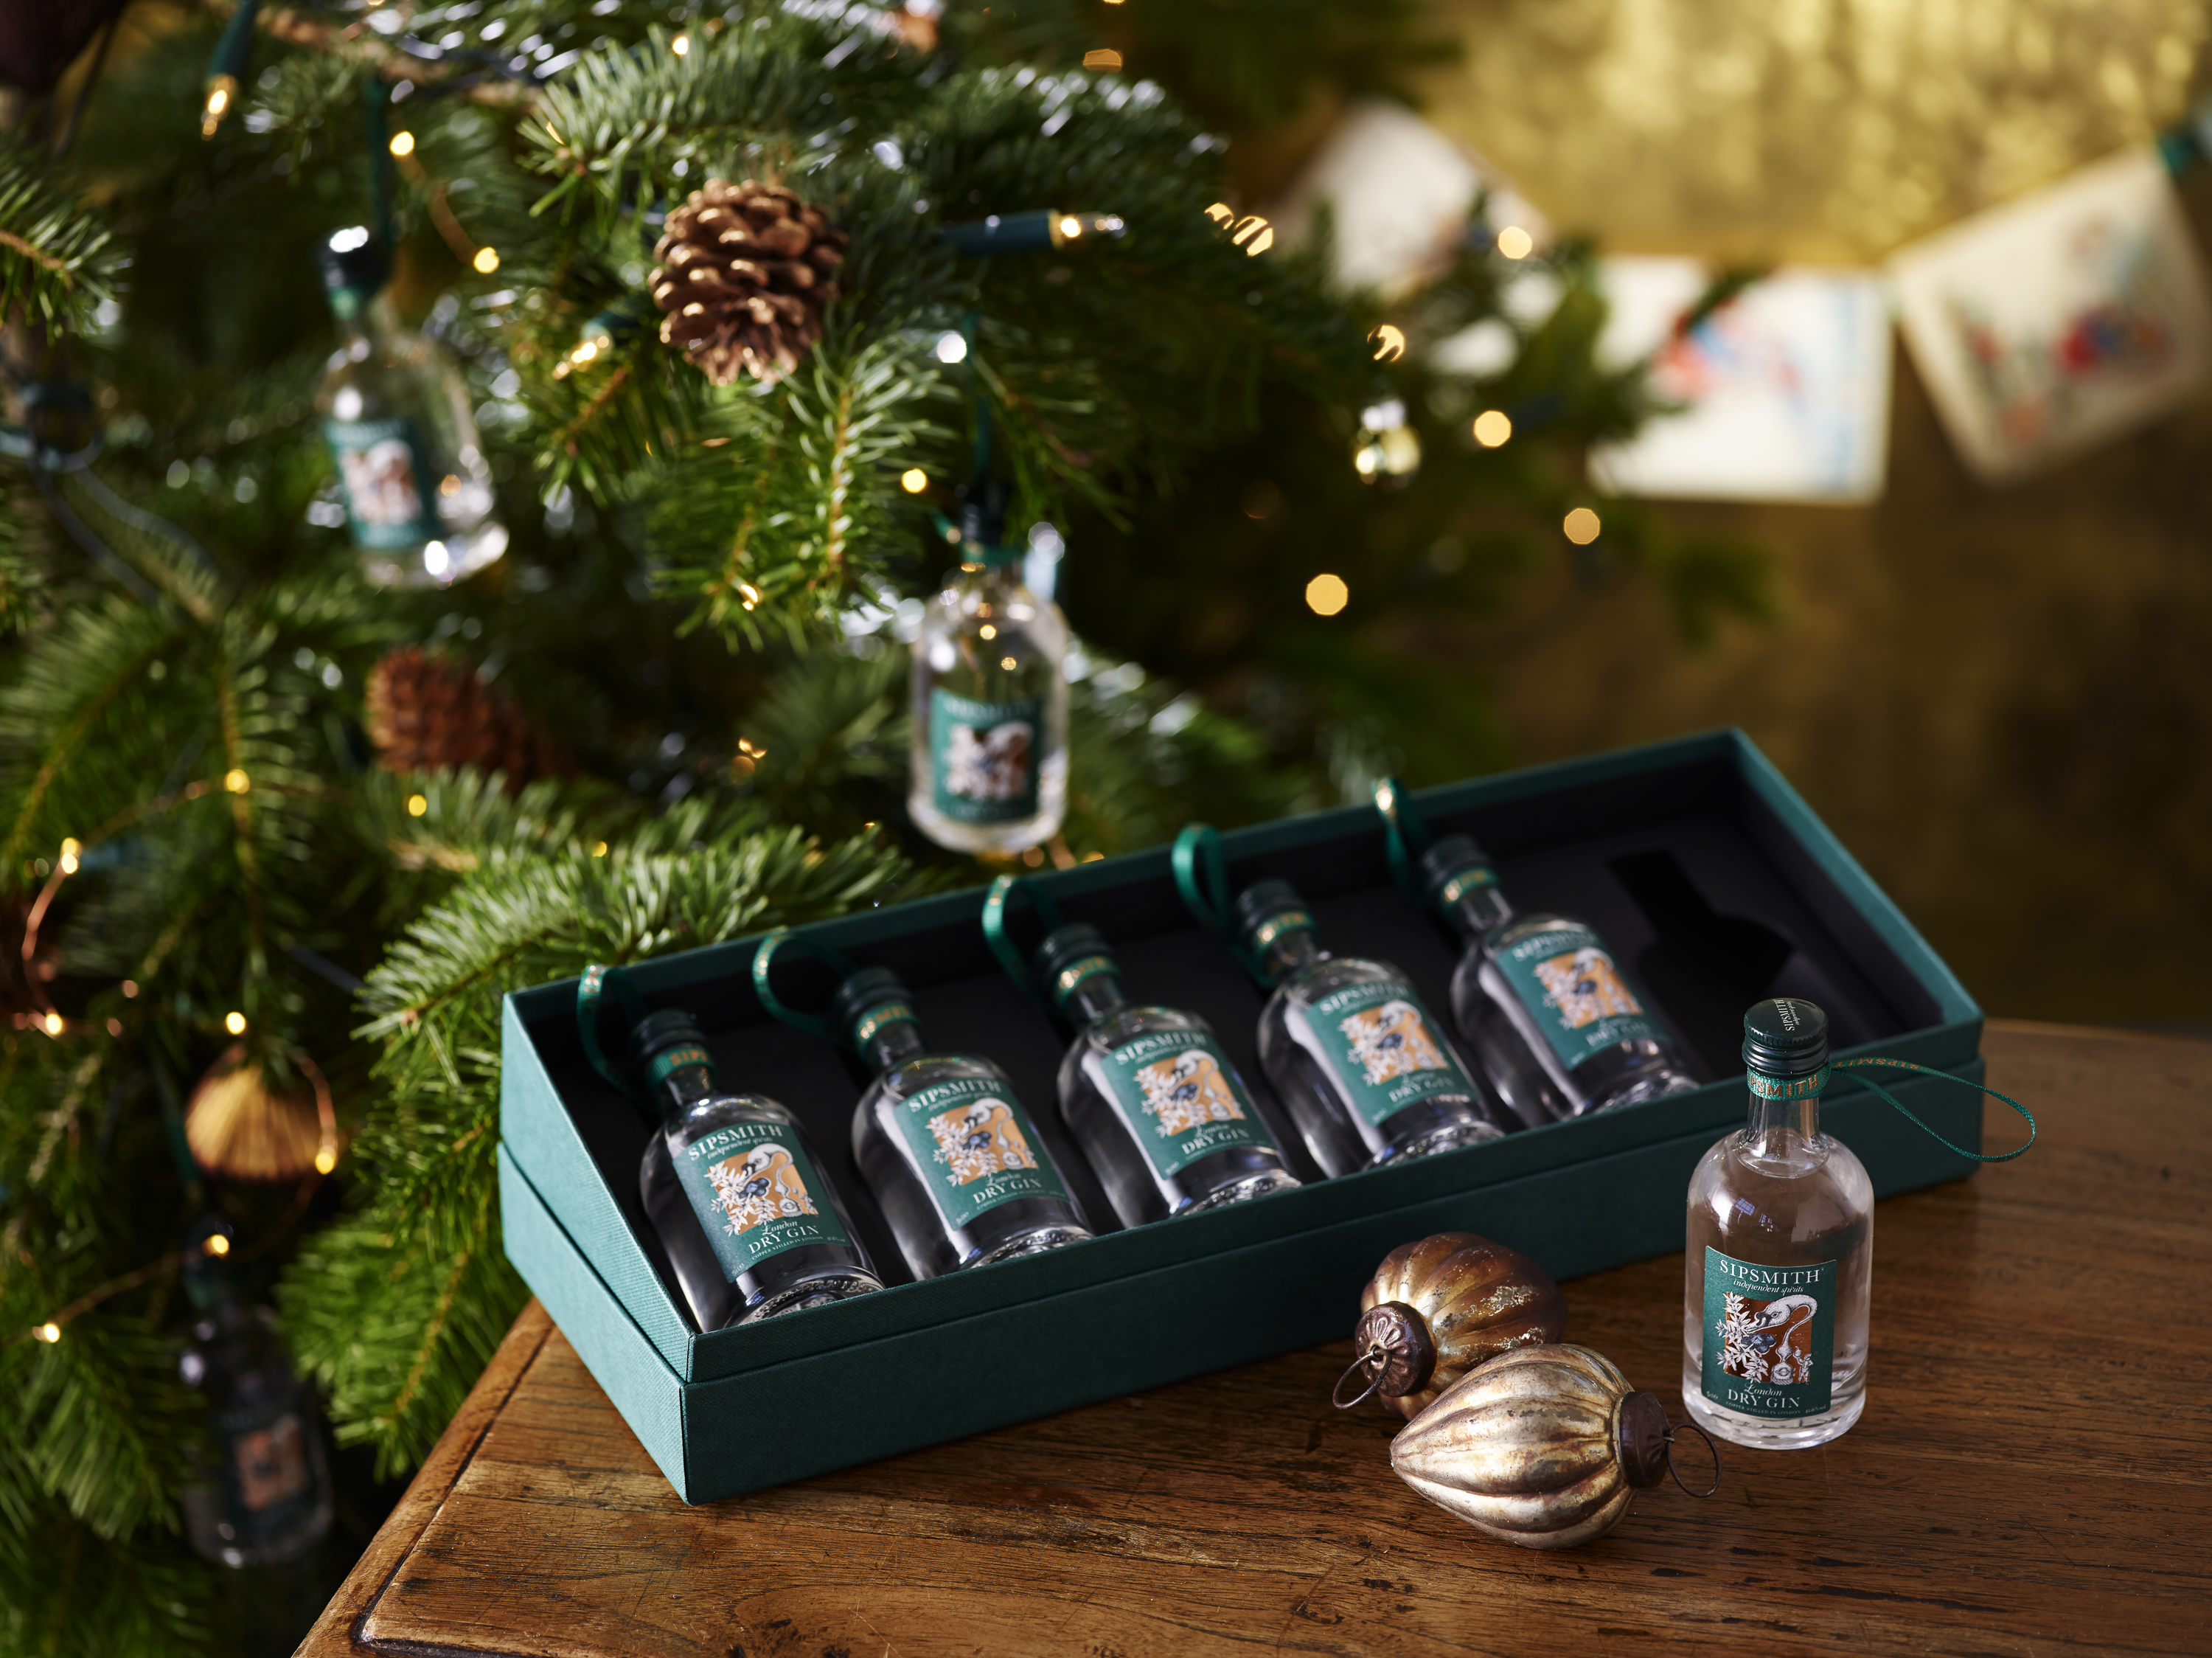 sipsmith-gin-baubles